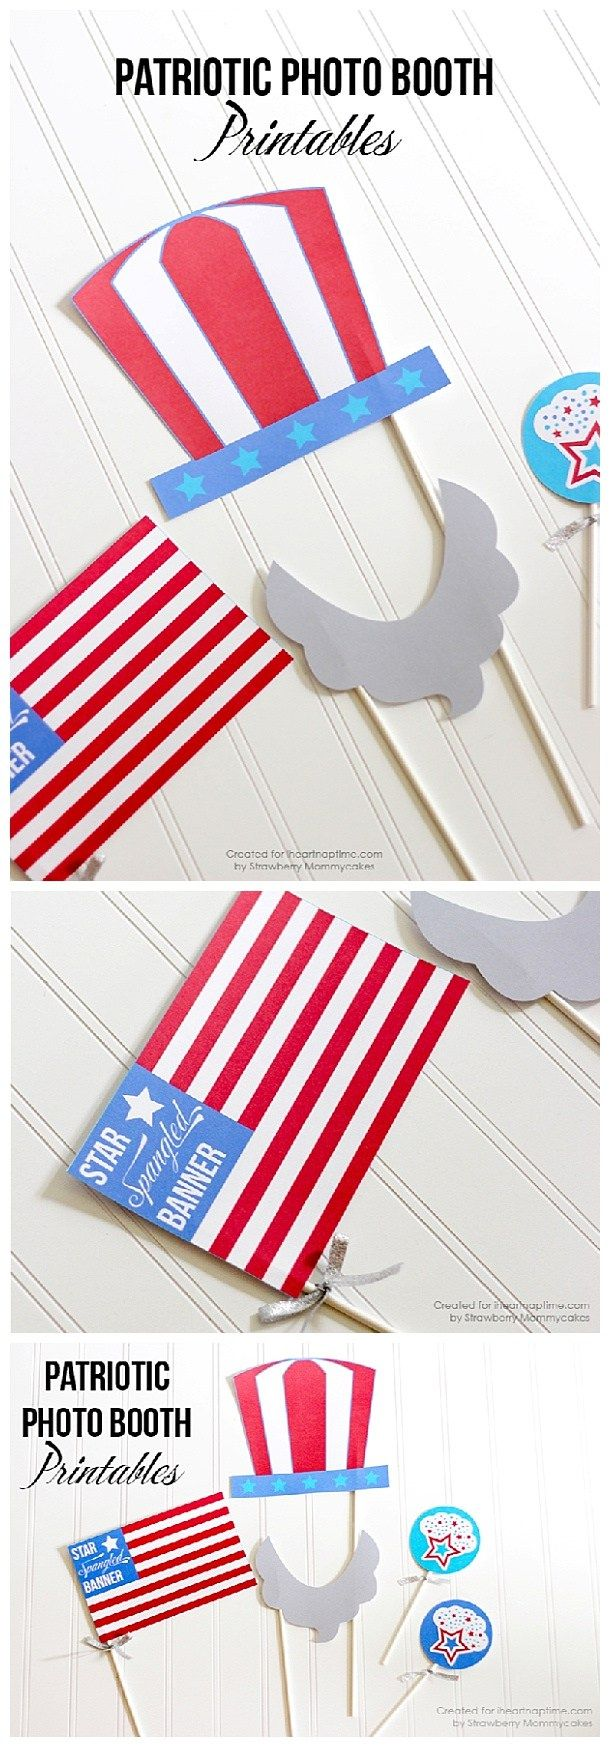 Do it Yourself 4th of July Party - Patriotic Photo Booth Props FREE Printables via i heart Naptime